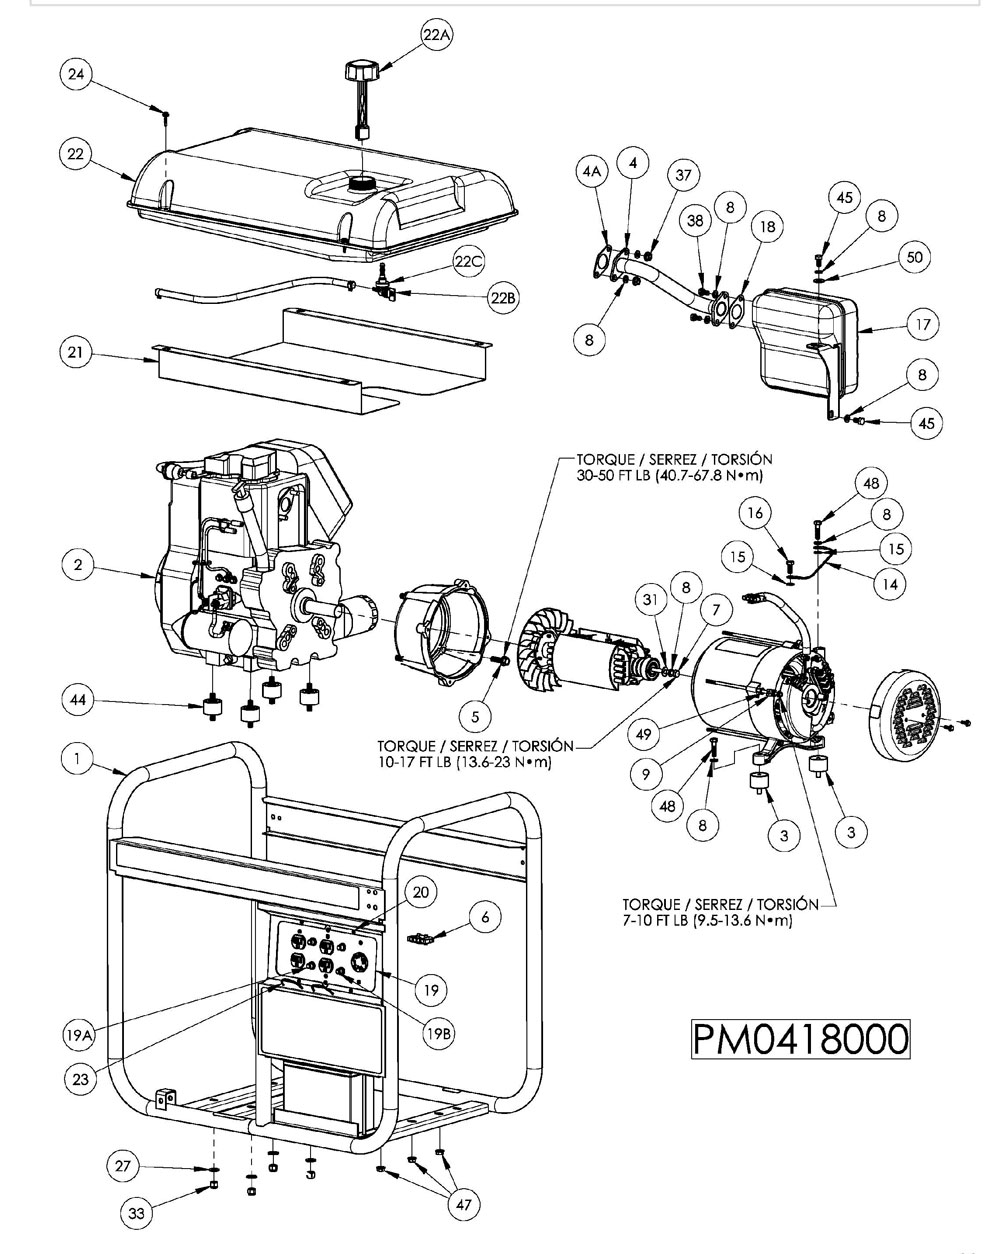 Toy Electric Car Wiring Diagram together with 3500 Watt Generator Diagram together with Sears Craftsman 919177541 P 48540 additionally Portable Gas Generator Parts Bm907000 P 649071 further Wiring Diagram For Electric Snow Blower. on wiring diagram portable generator